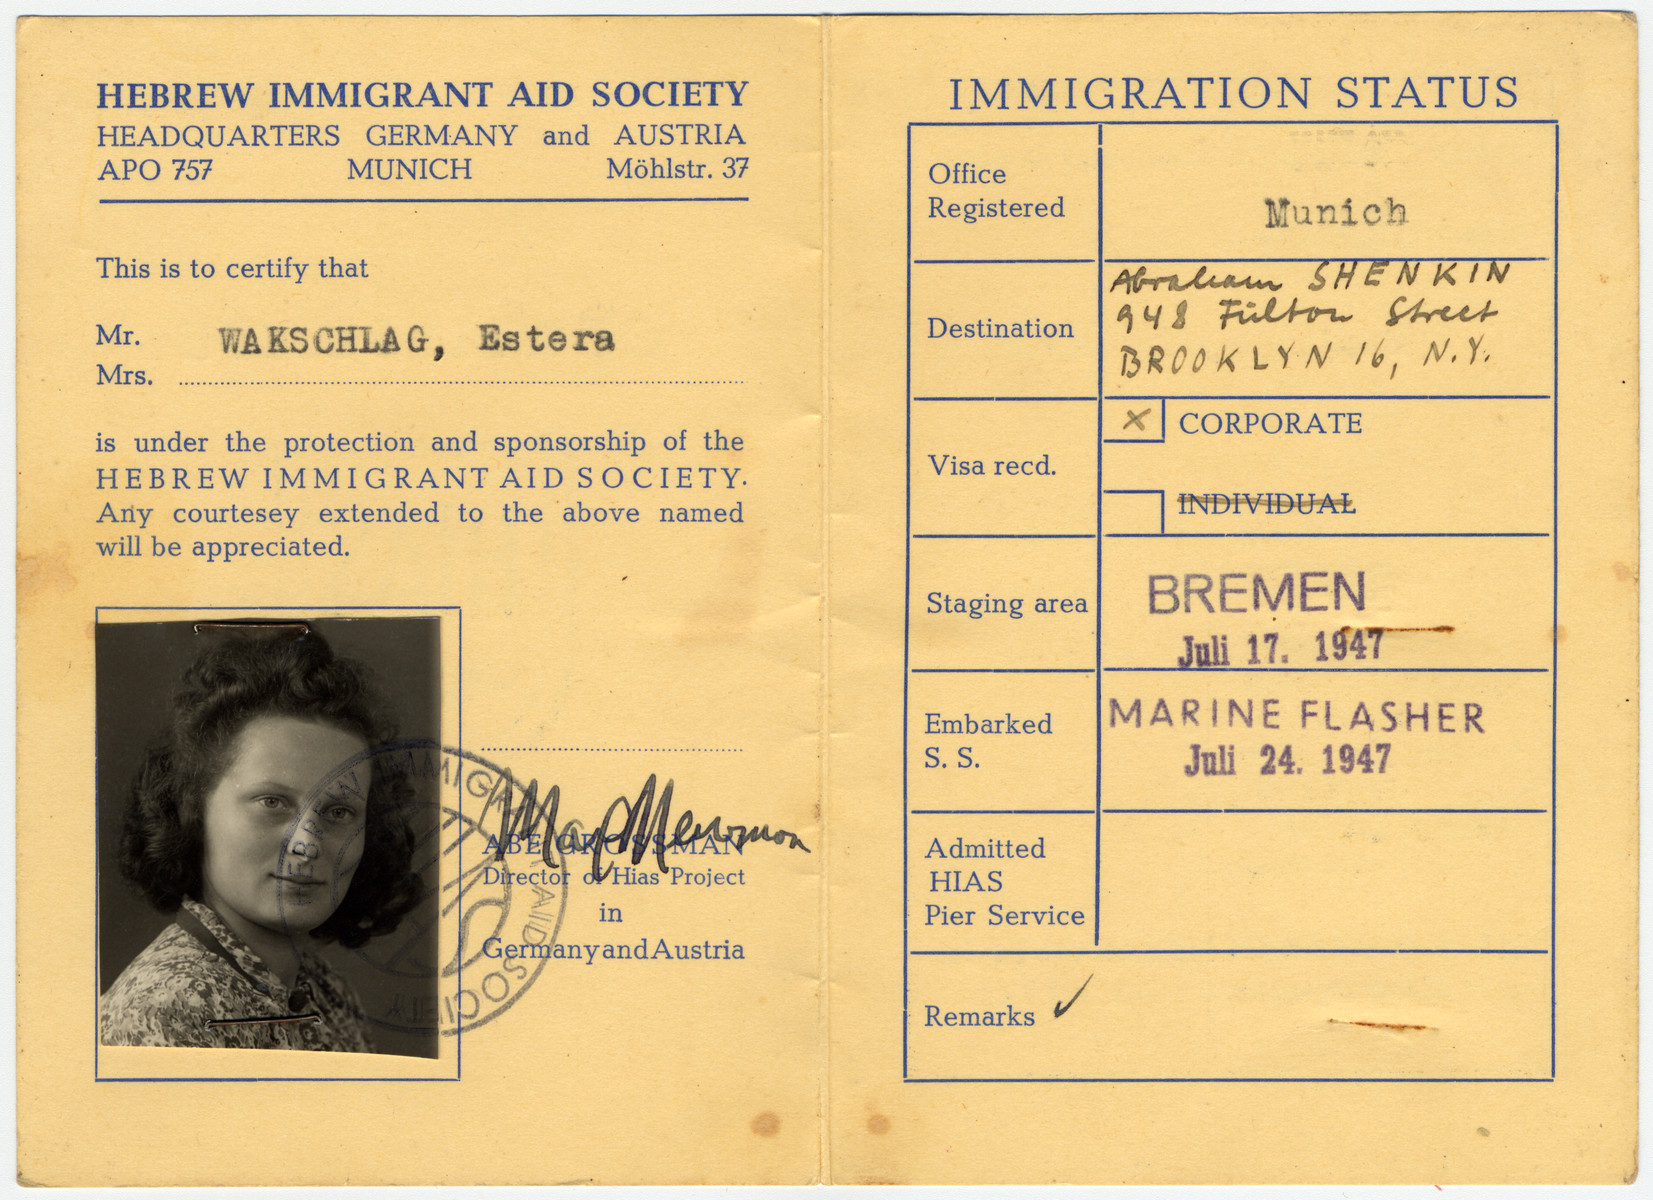 HIAS immigration certificate issued to Estera Wakschlag prior to her immigration to the United States en board the Marine Flasher.